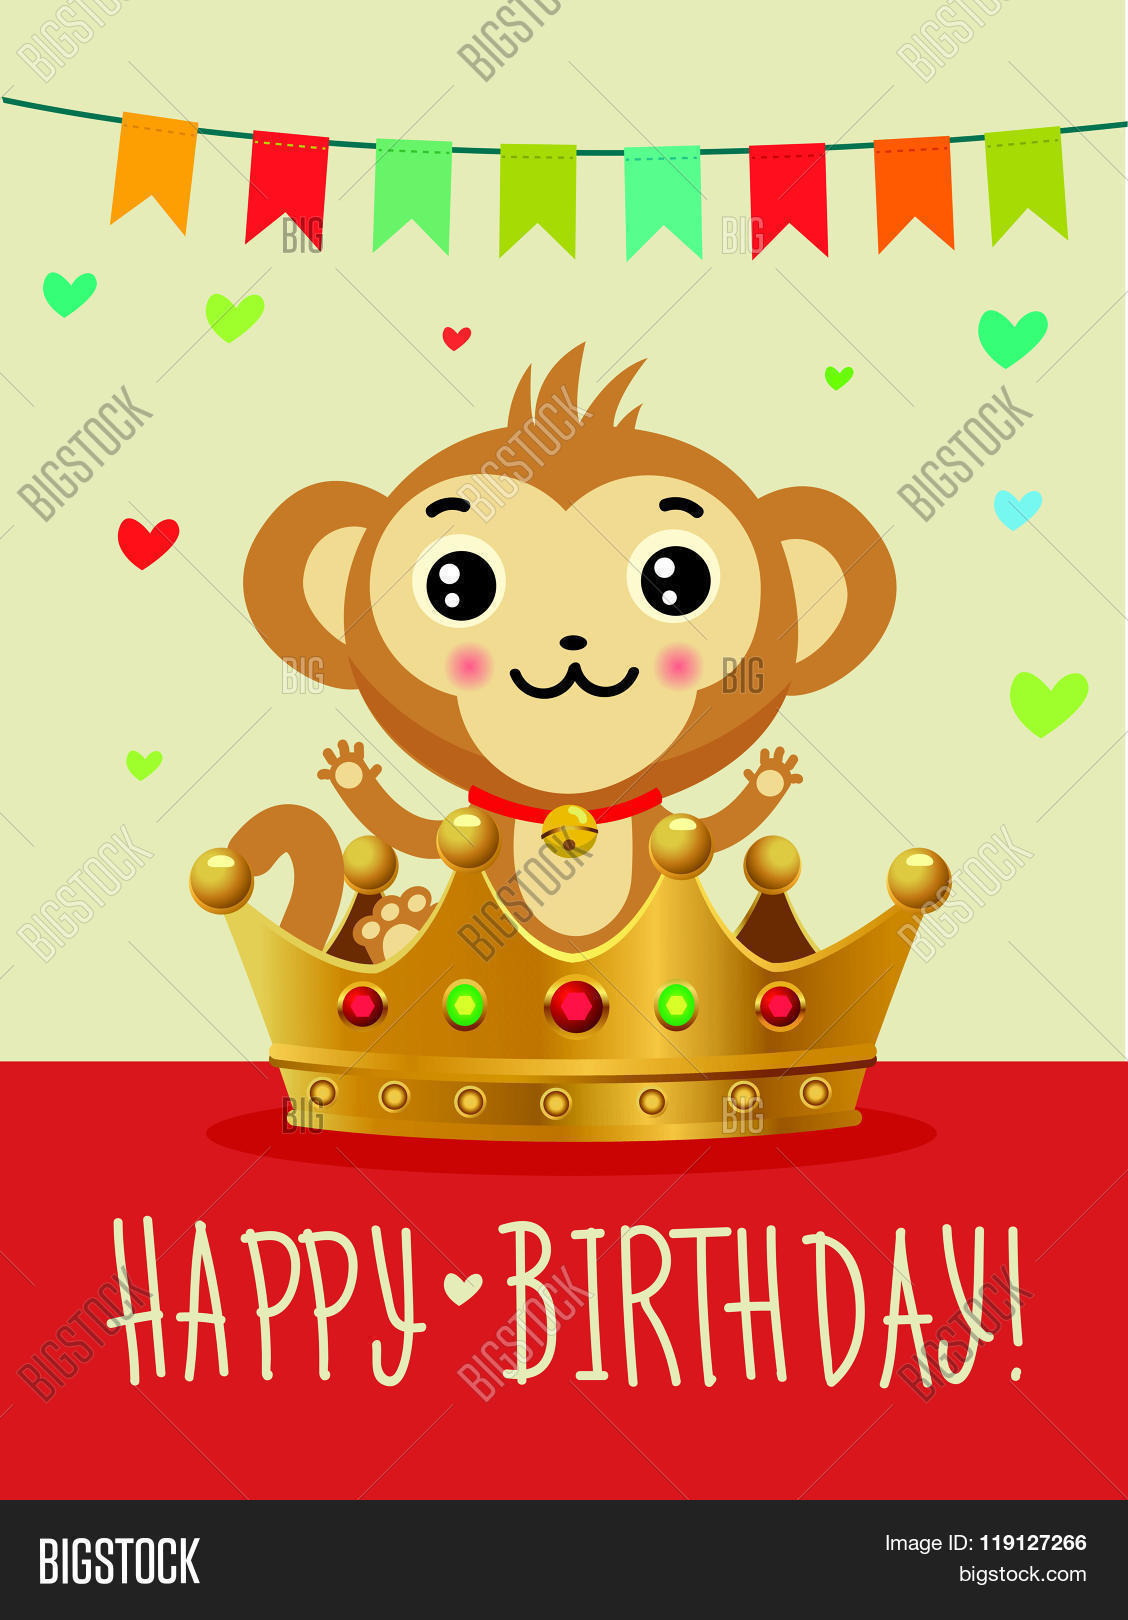 Happy Birthday To You. Wish, Humour, Friendship. Greeting Card. Birthday  Image